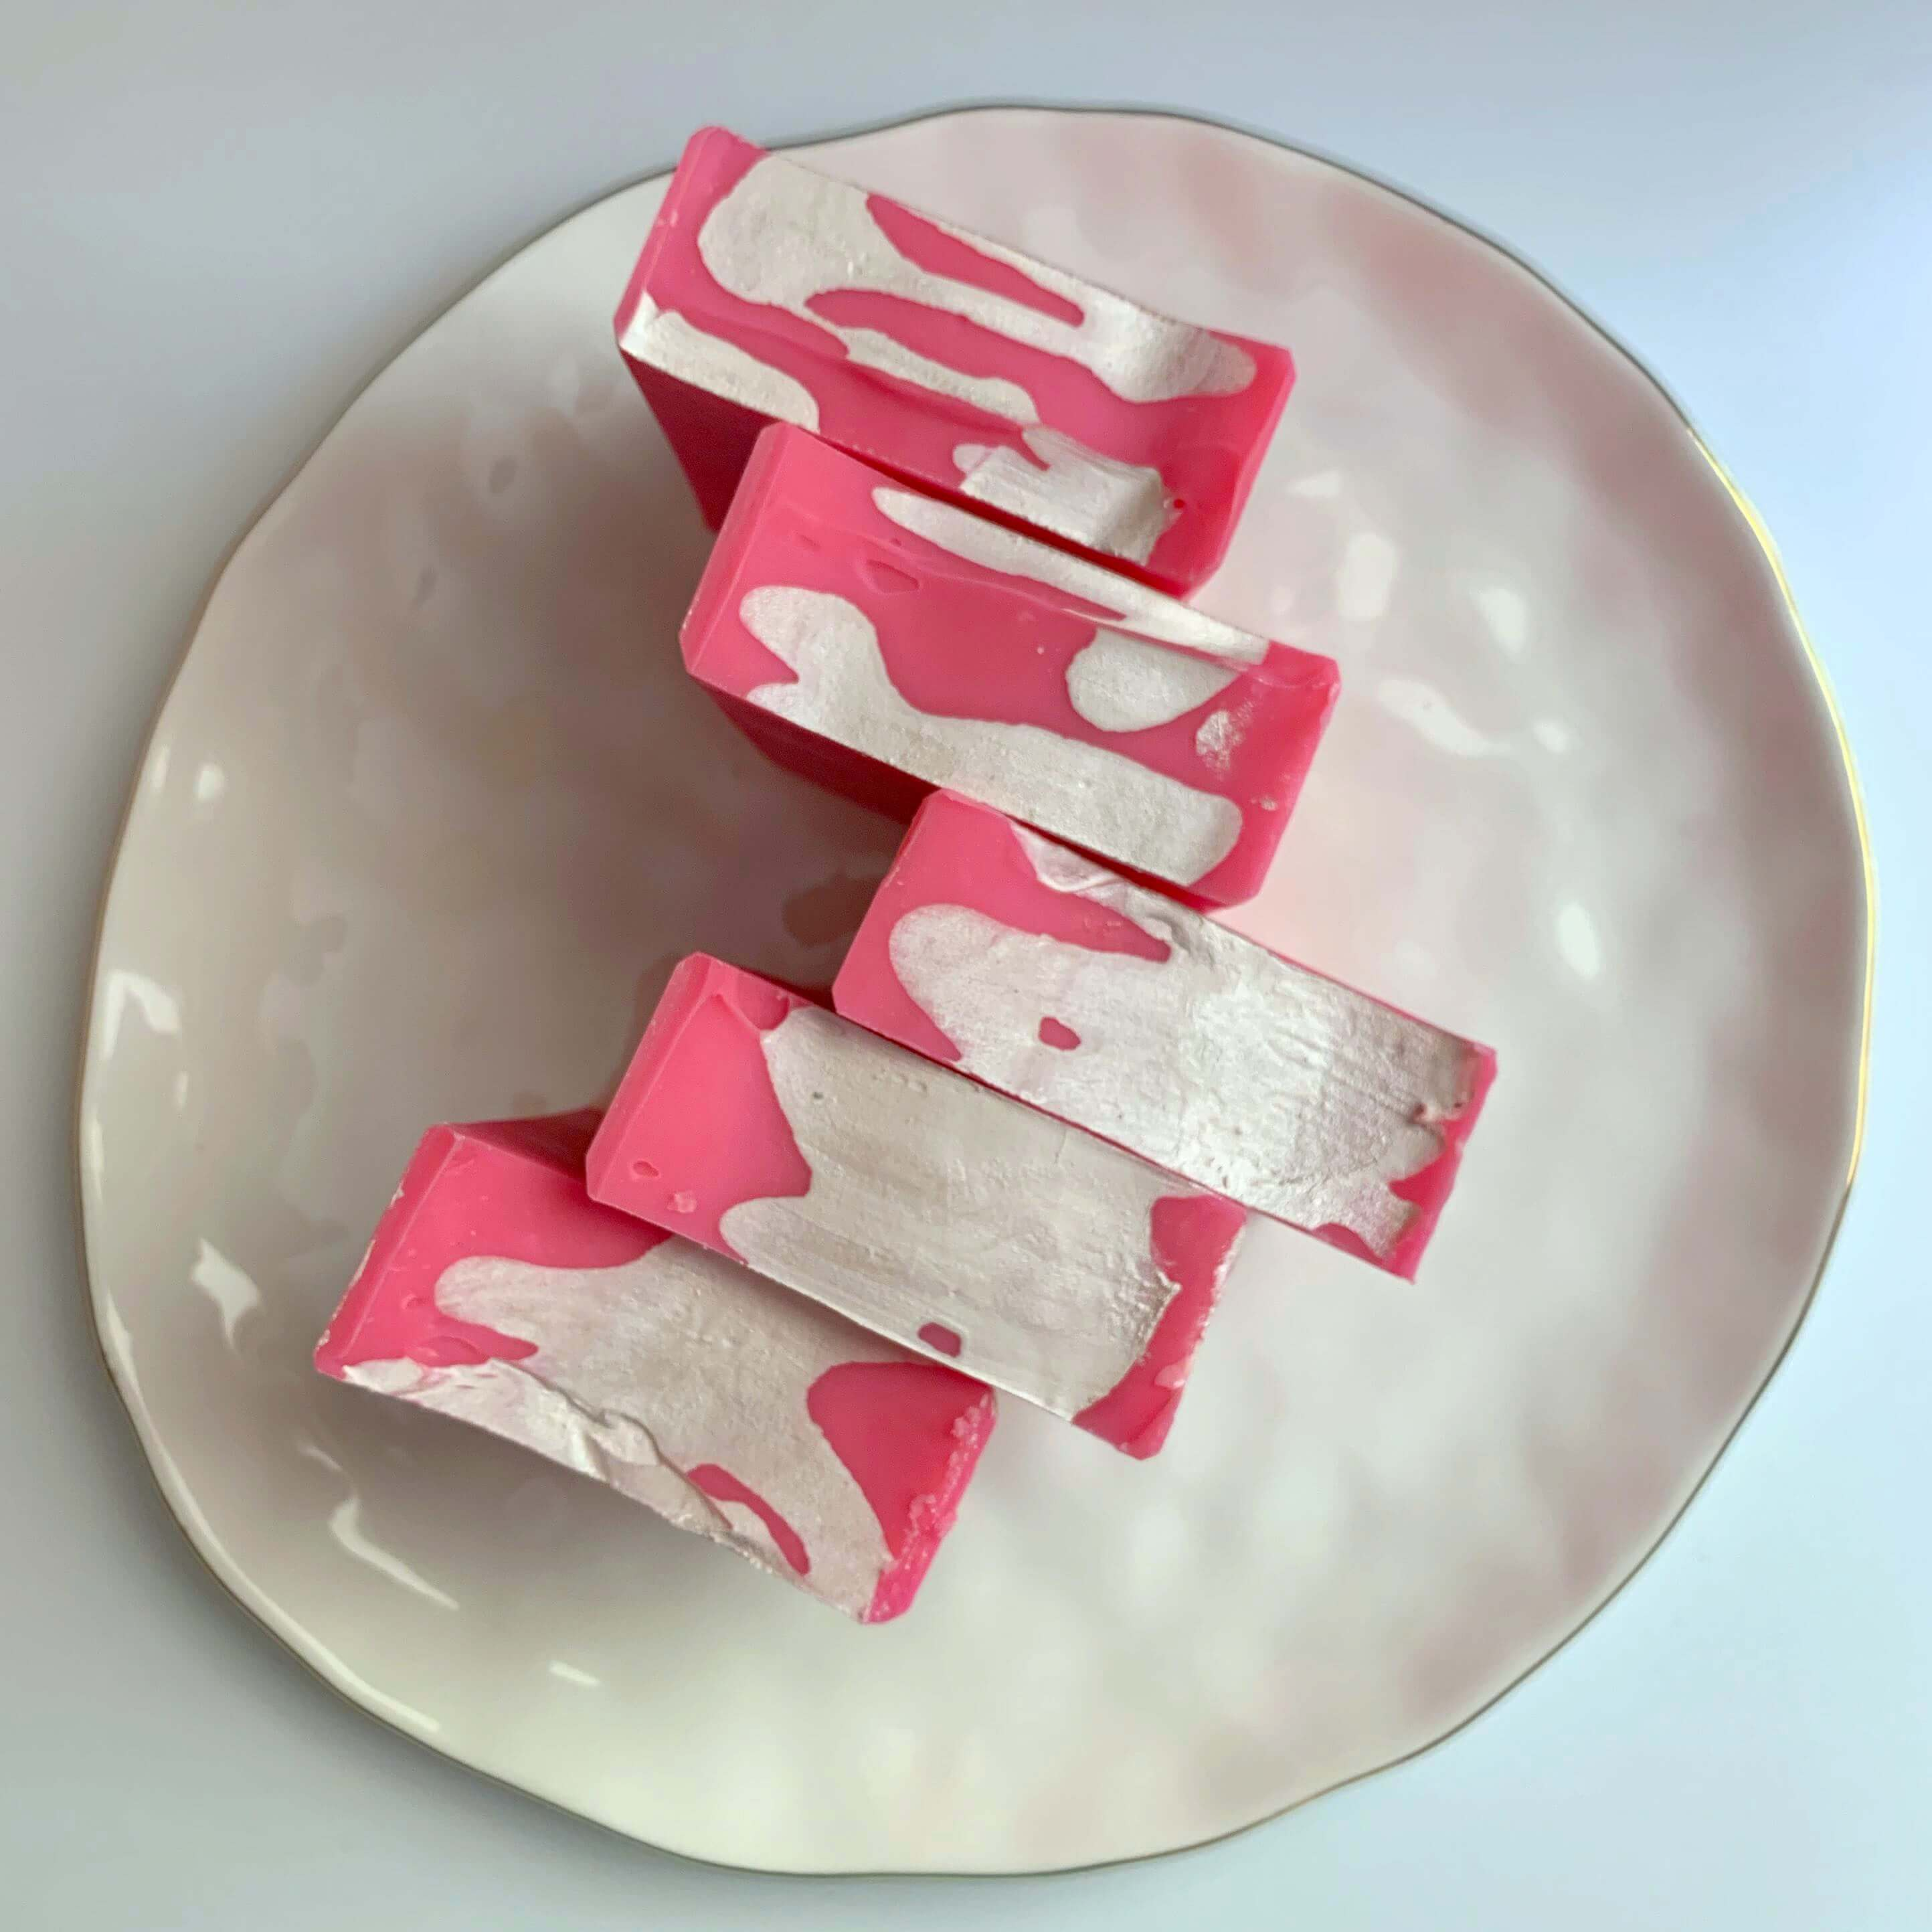 top down flat lay view of strawberry milkshake soaps on a white plate